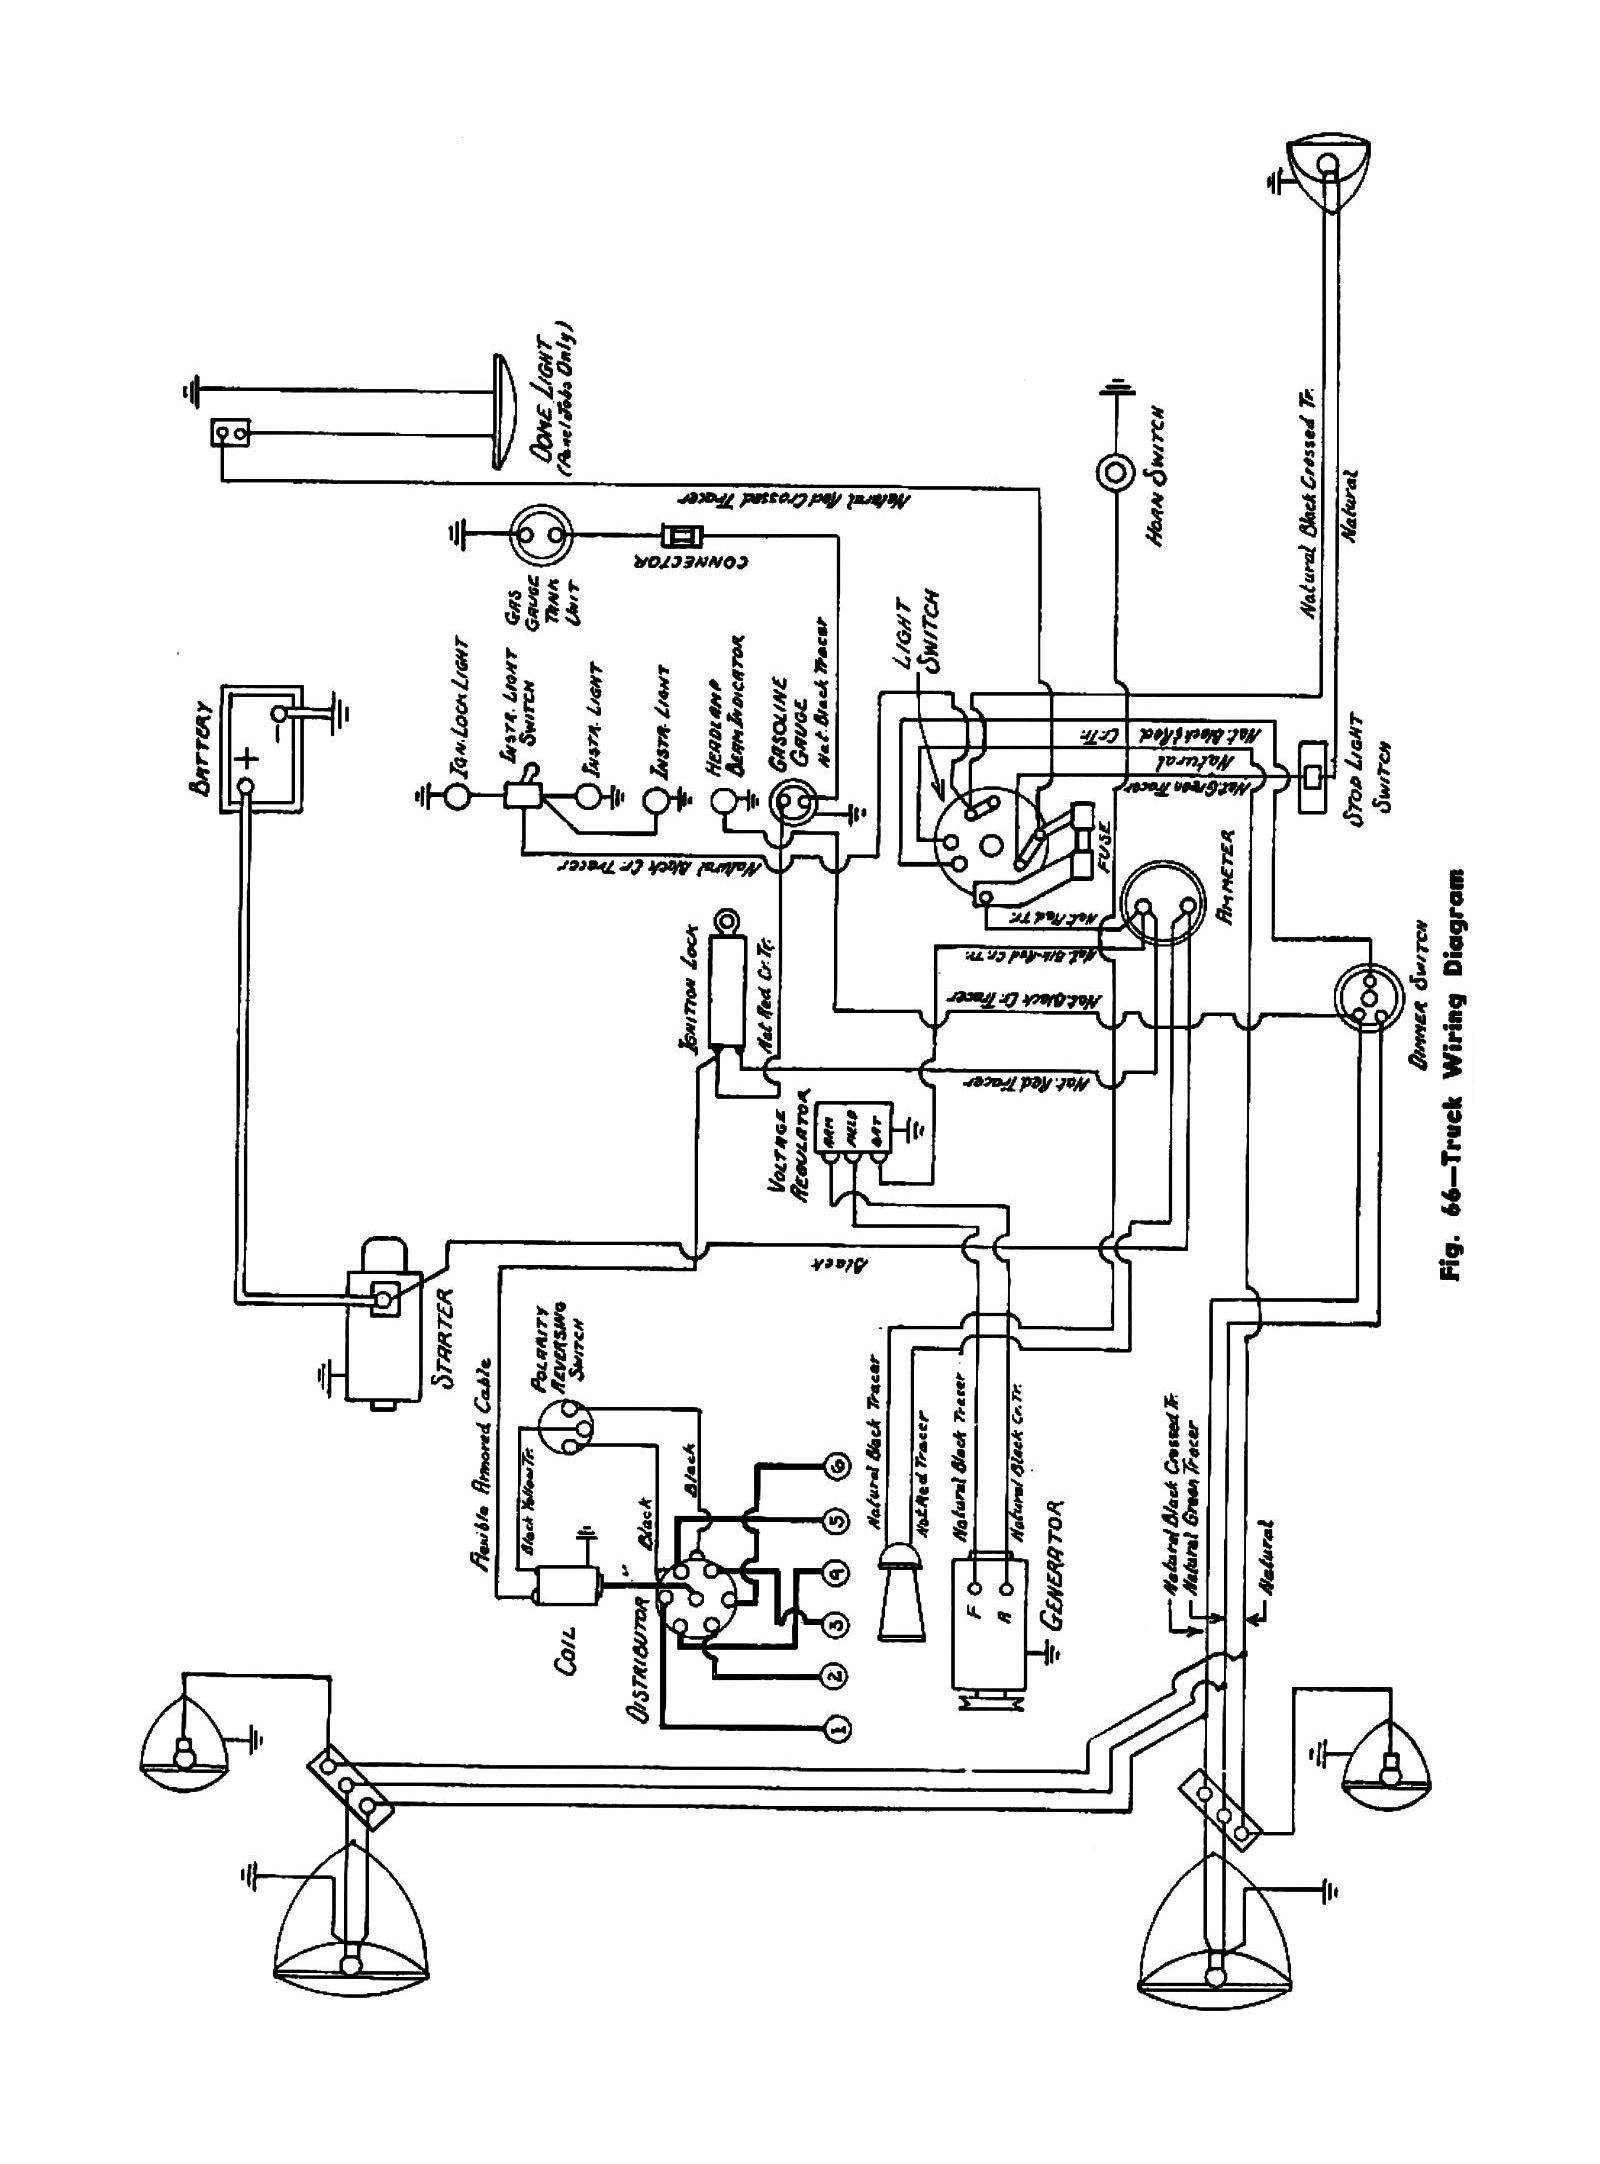 45truck ihc truck wiring diagrams mazda truck wiring diagrams \u2022 free Chevy Truck Fuse Box Diagram at edmiracle.co